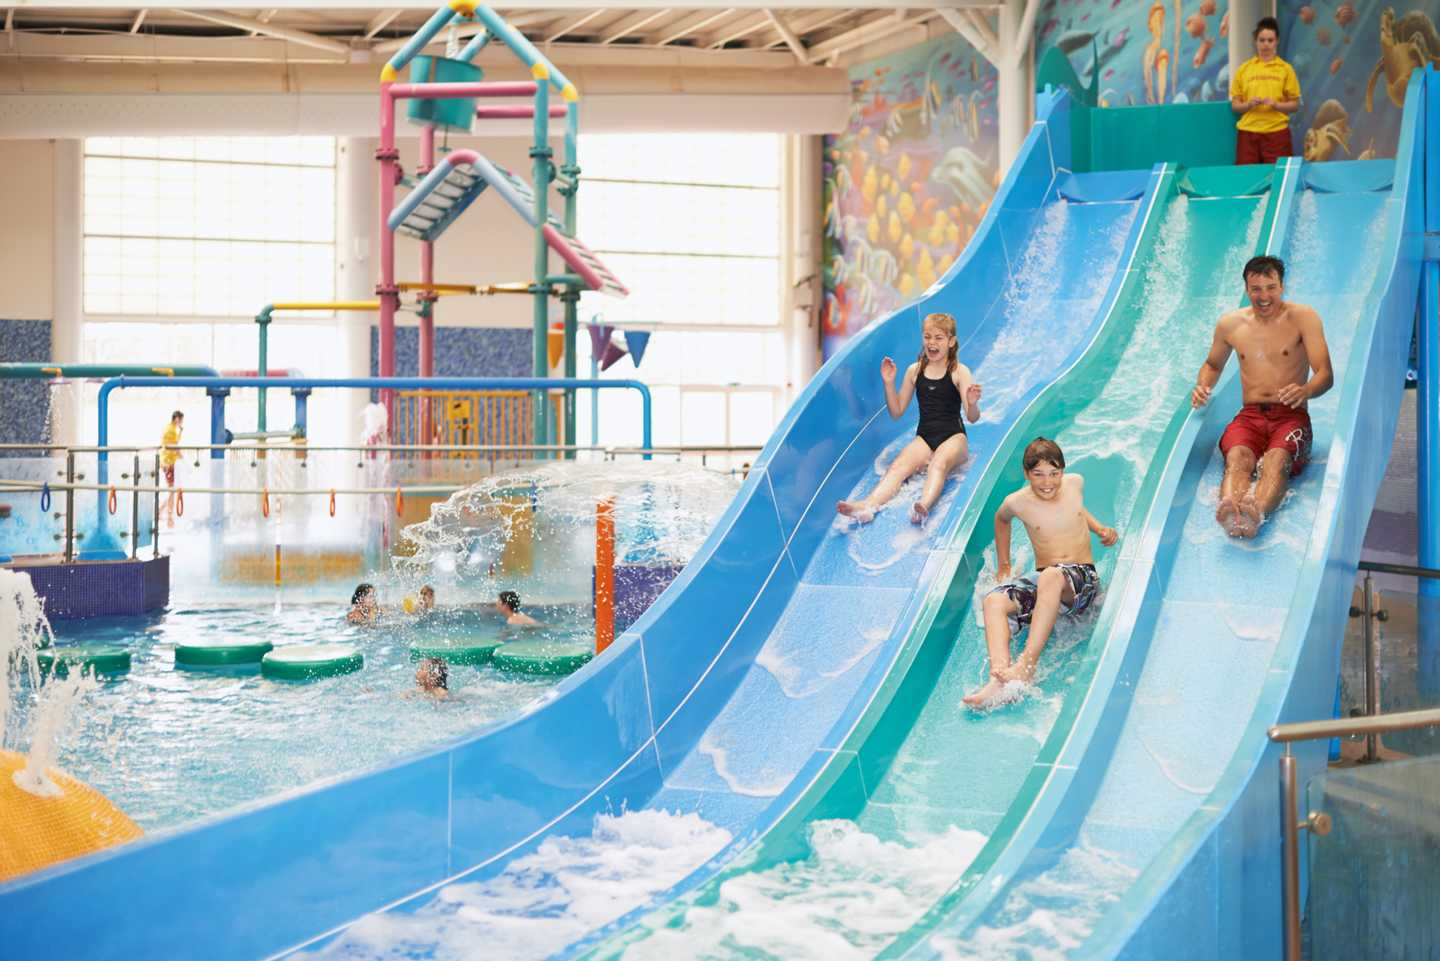 Children sliding down the indoor pool slide